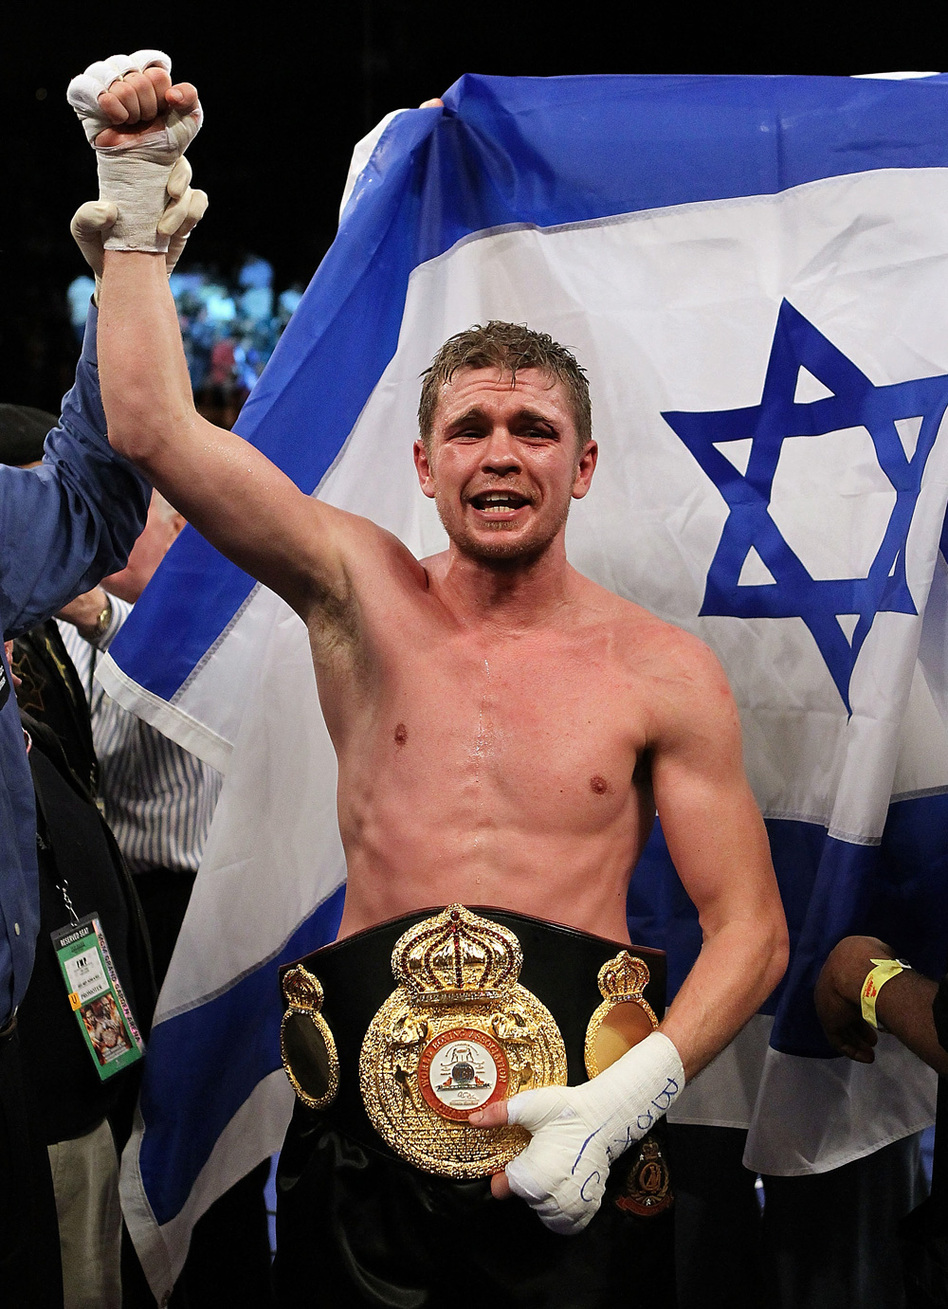 The Israeli flag provided a fitting backdrop for Foreman's championship celebration last November.